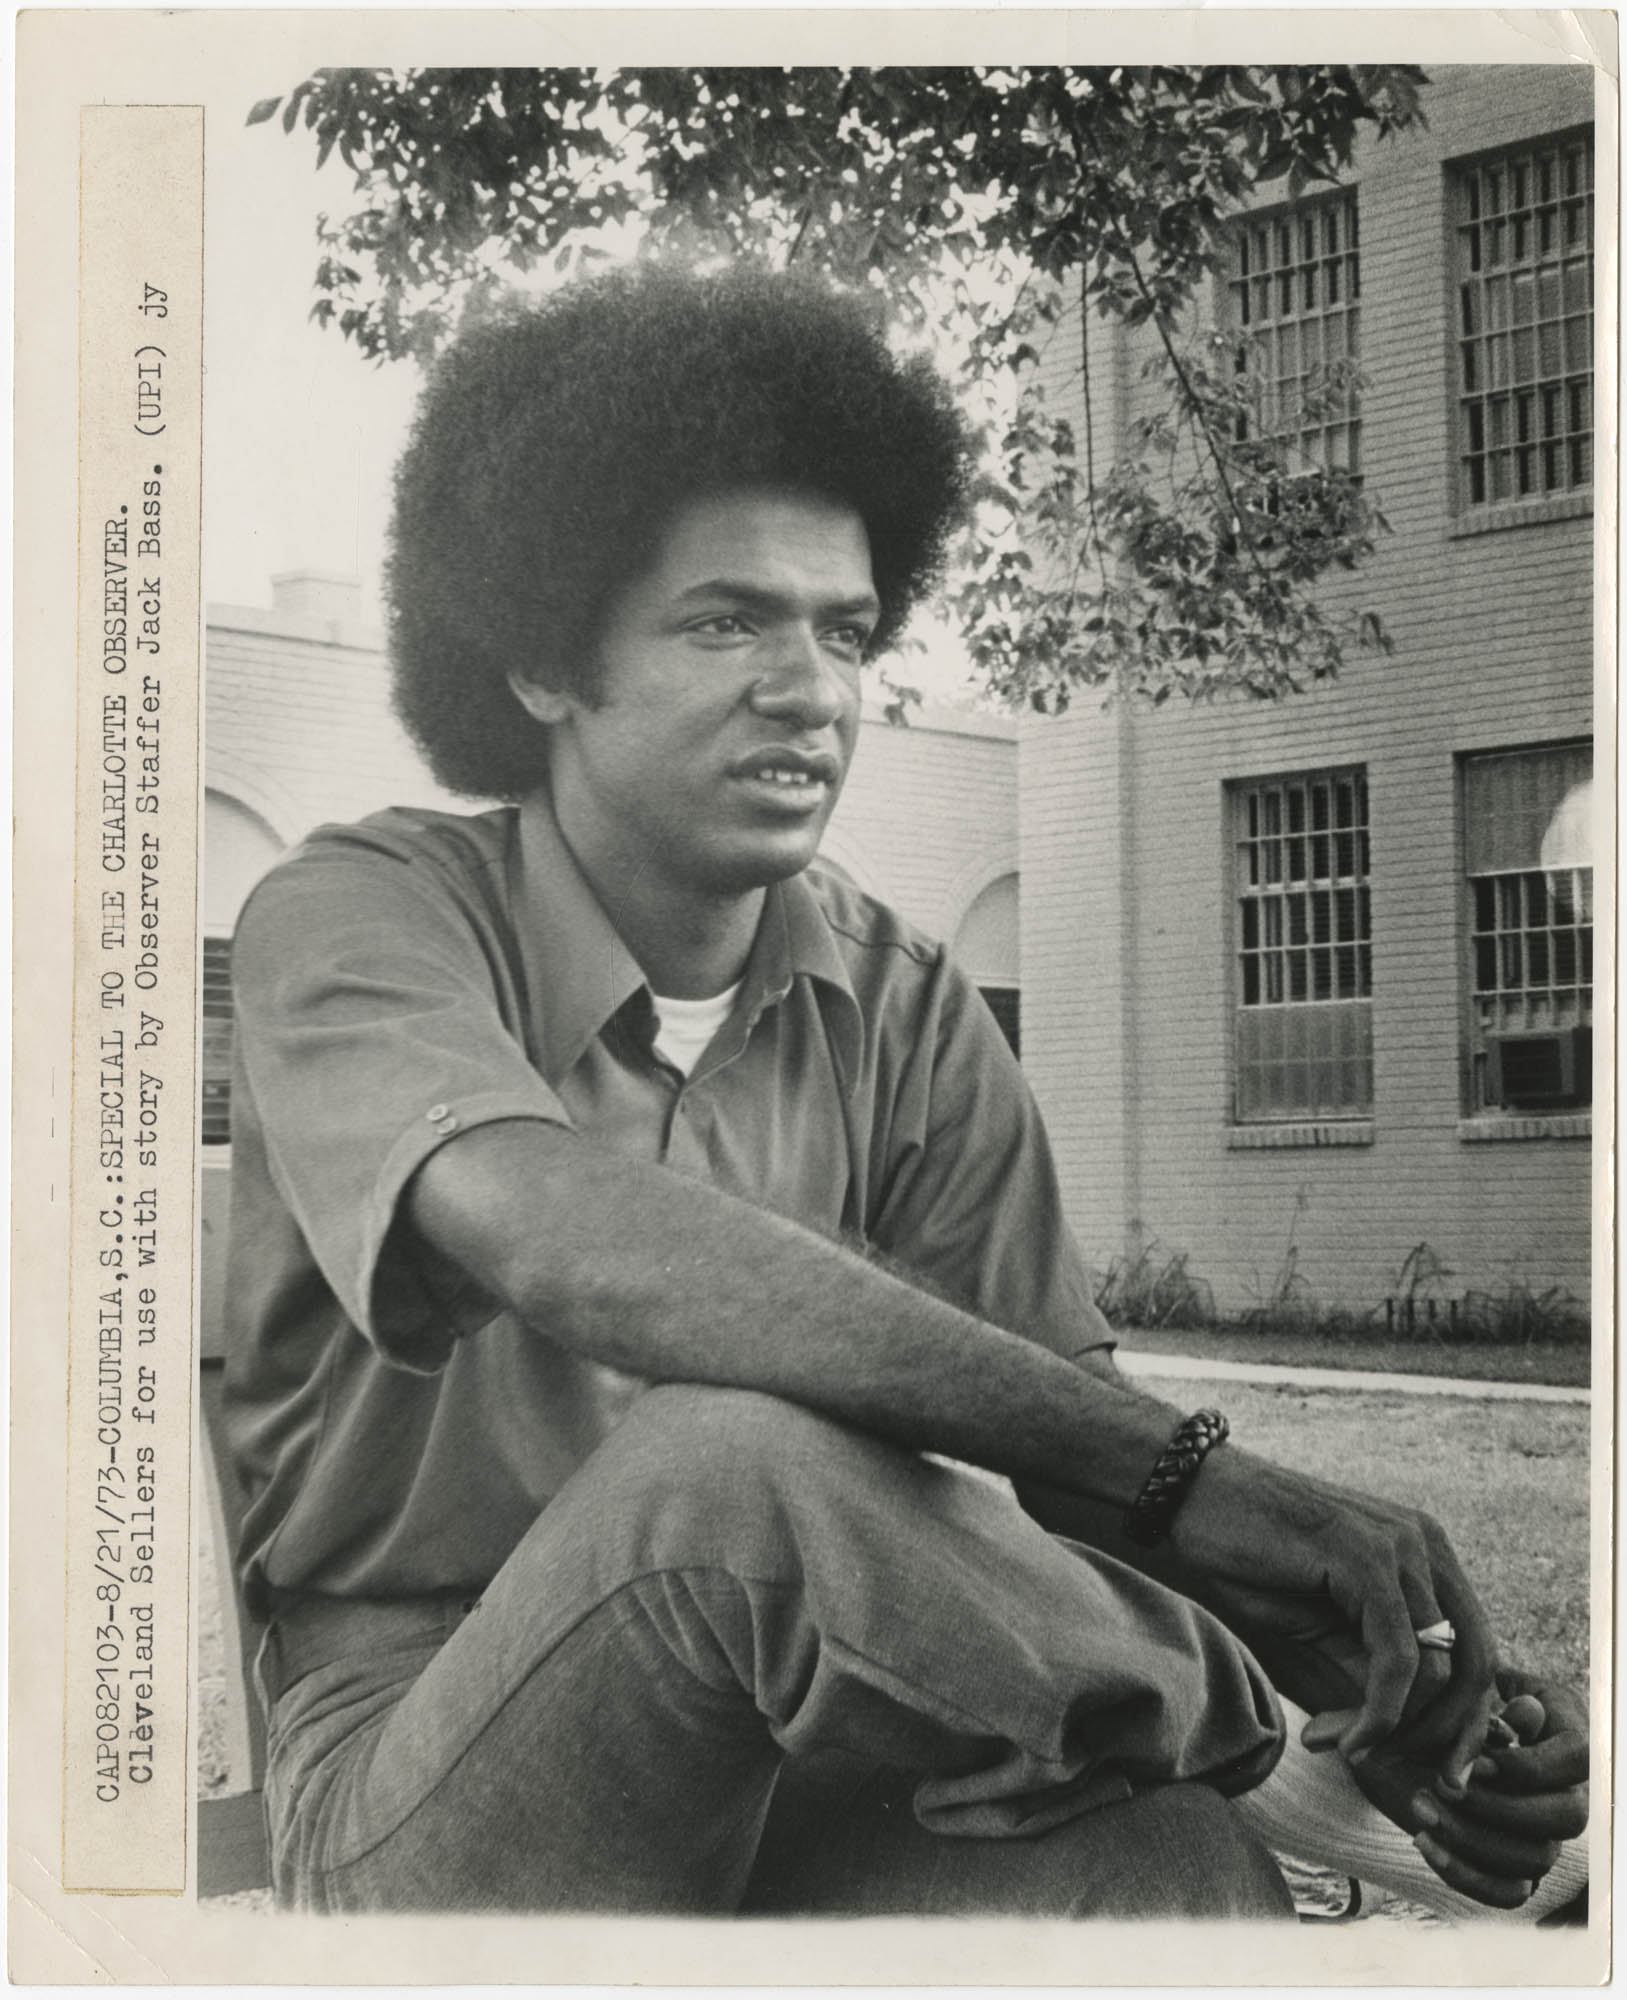 Photograph of Cleveland Sellers Seated Outdoors